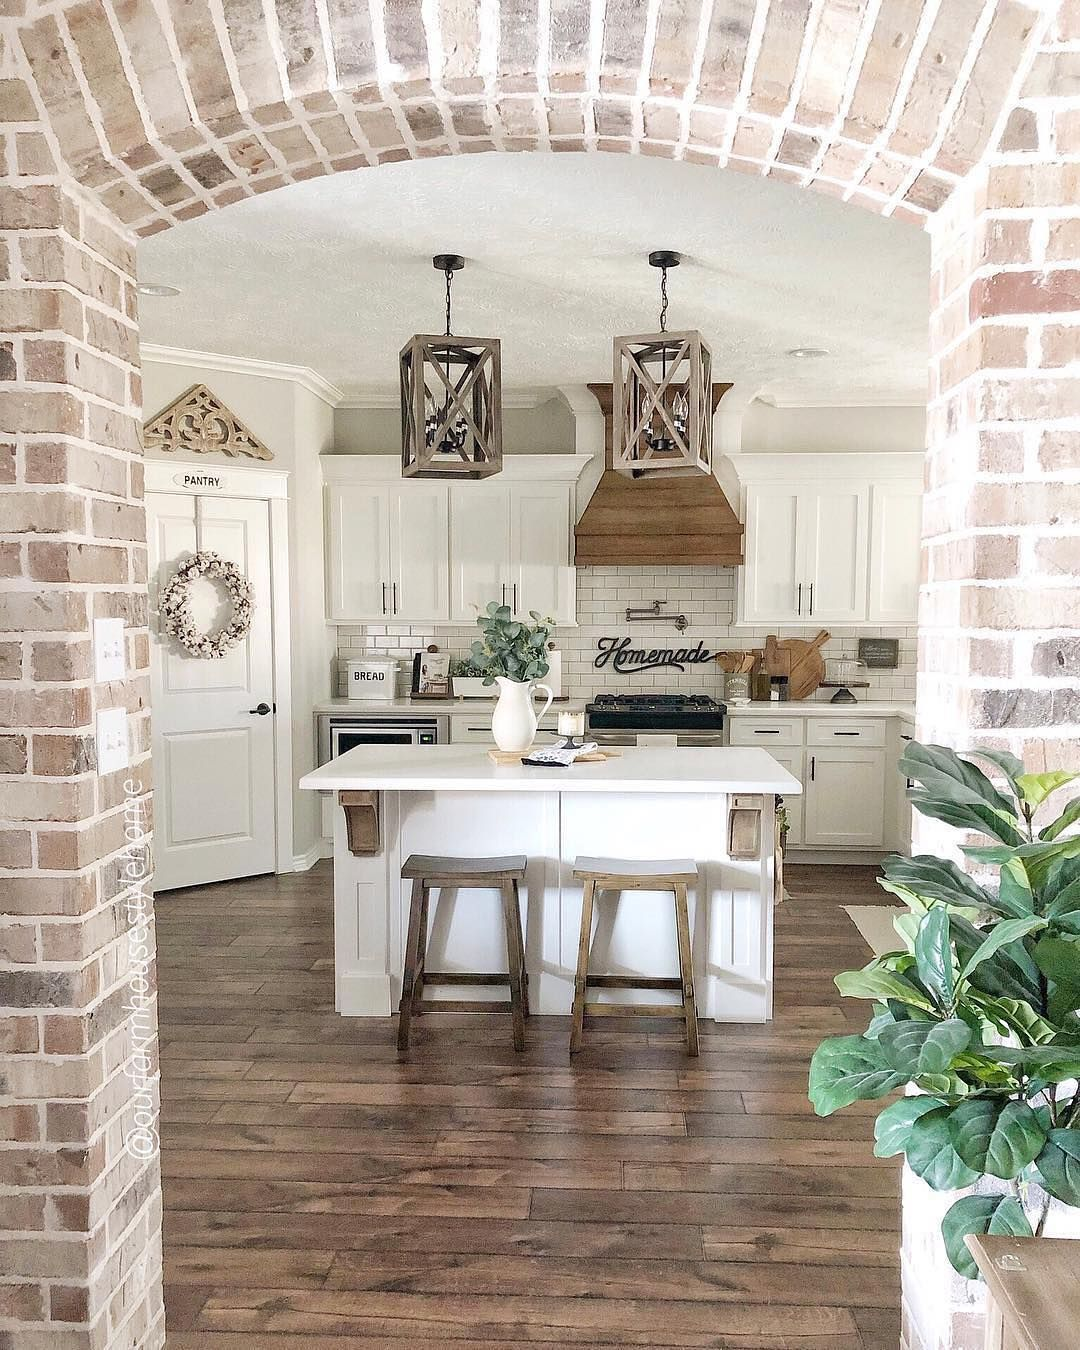 Farmhouse Fanatics On Instagram Rate This View On A Scale Of 1 10 Ourfarmhousestylehome Kitchen Remodel Design Country House Decor Elegant Kitchens